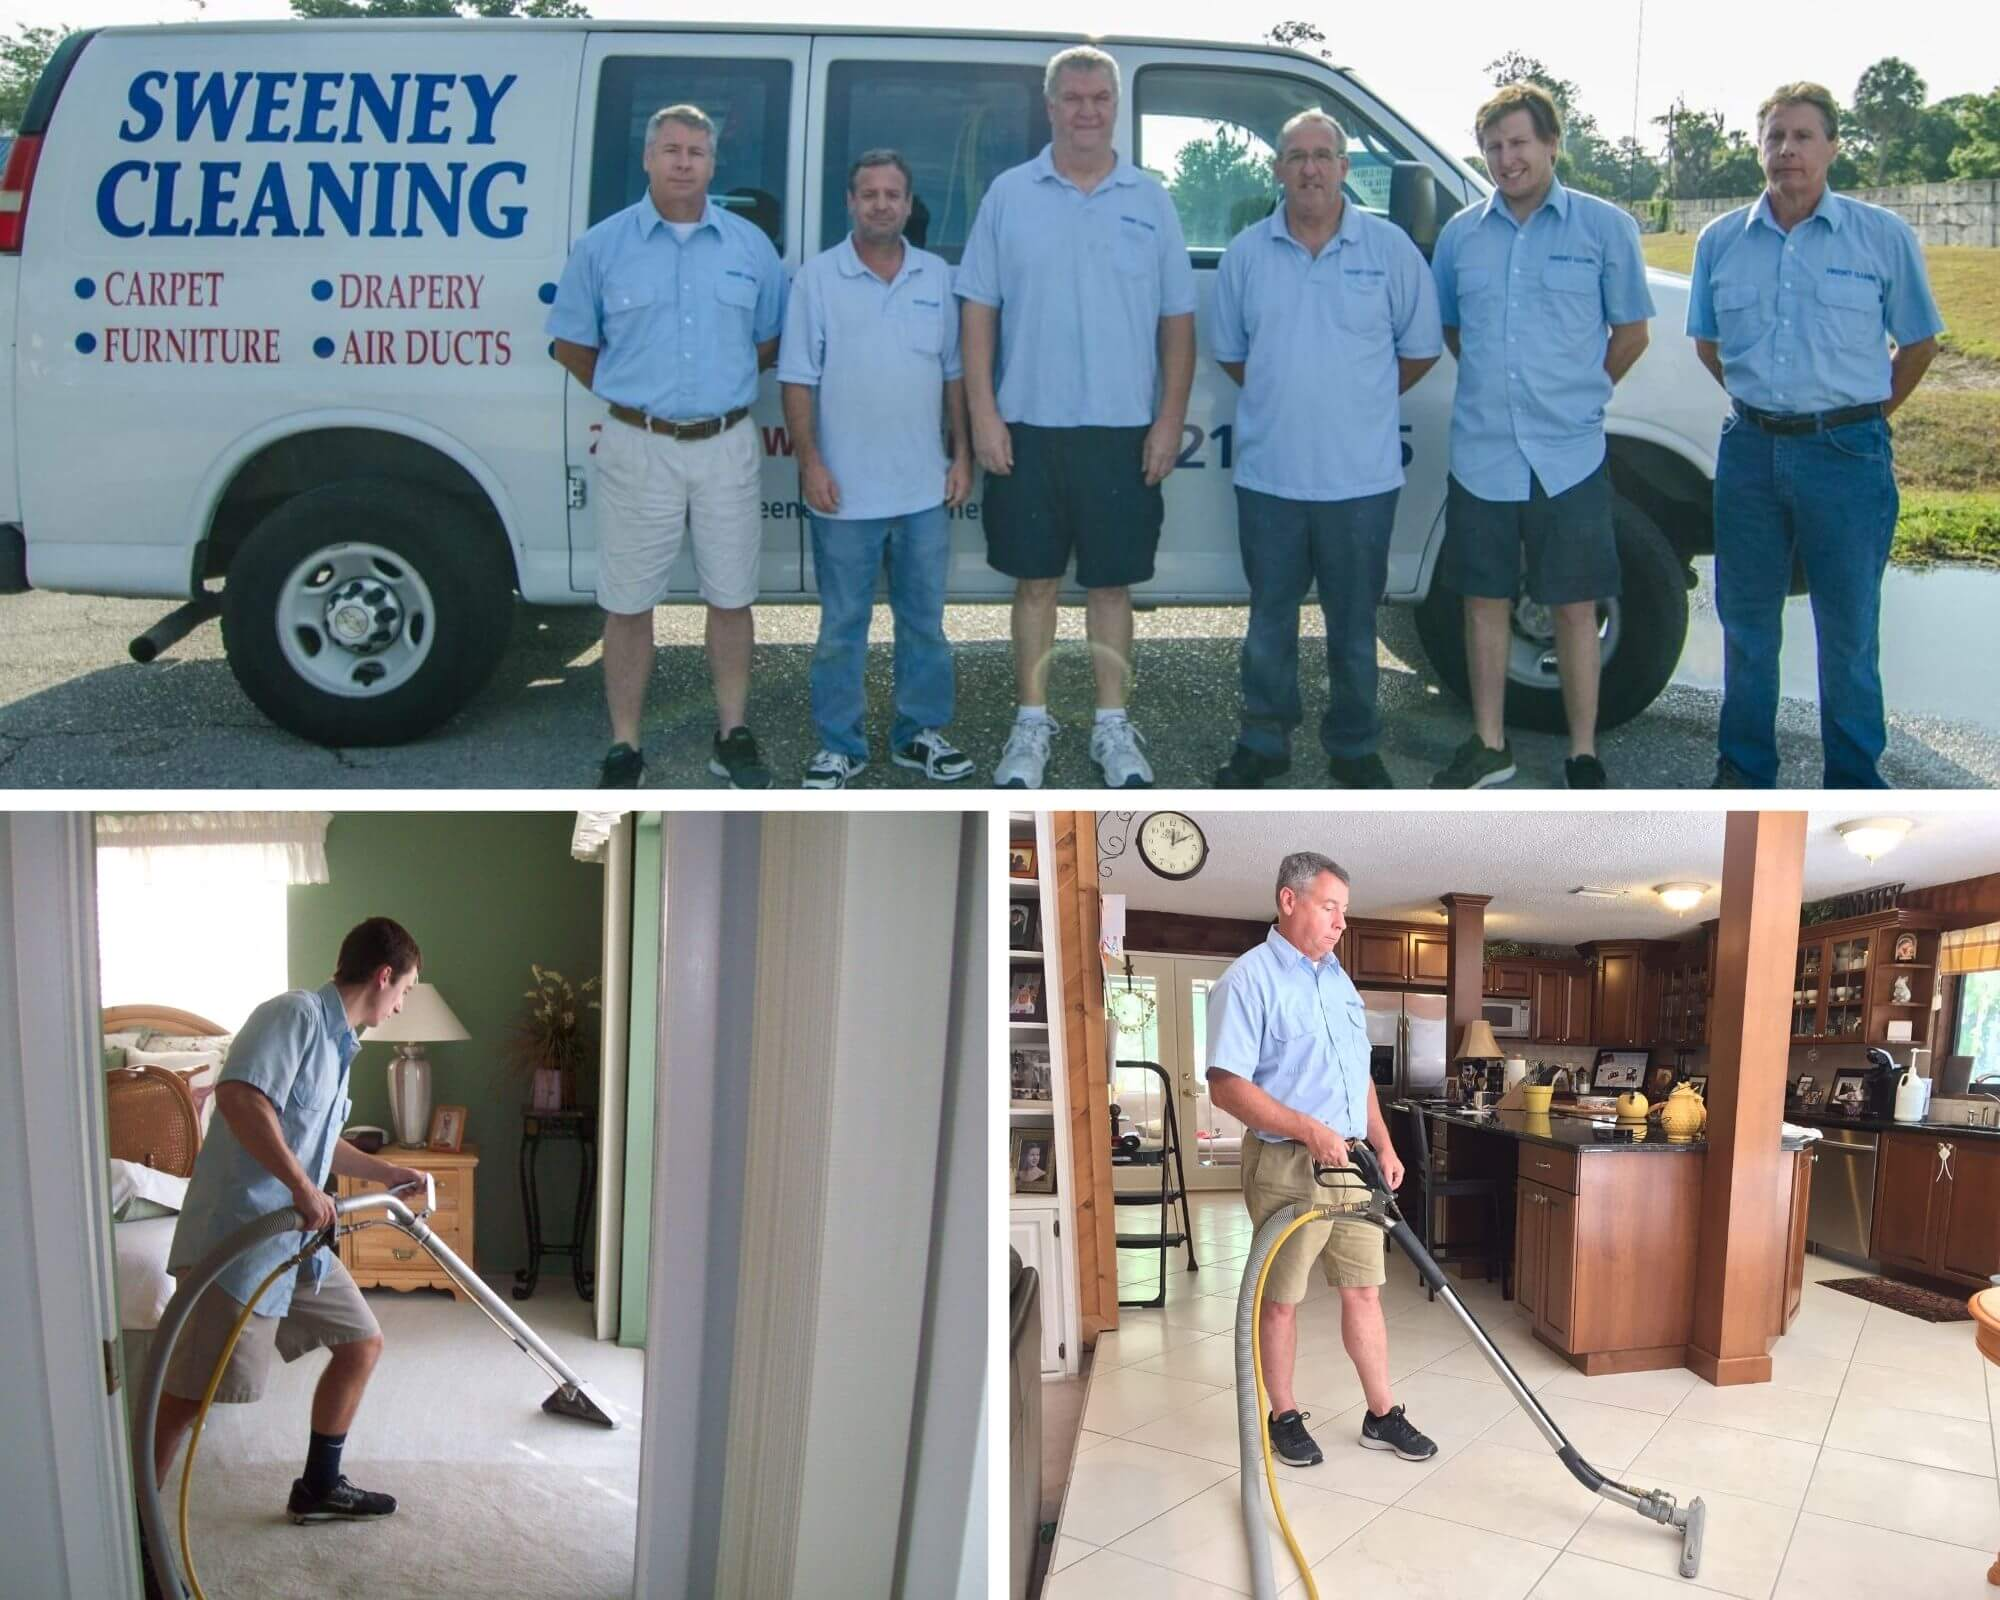 Sweeney Cleaning - Photo Collage 1